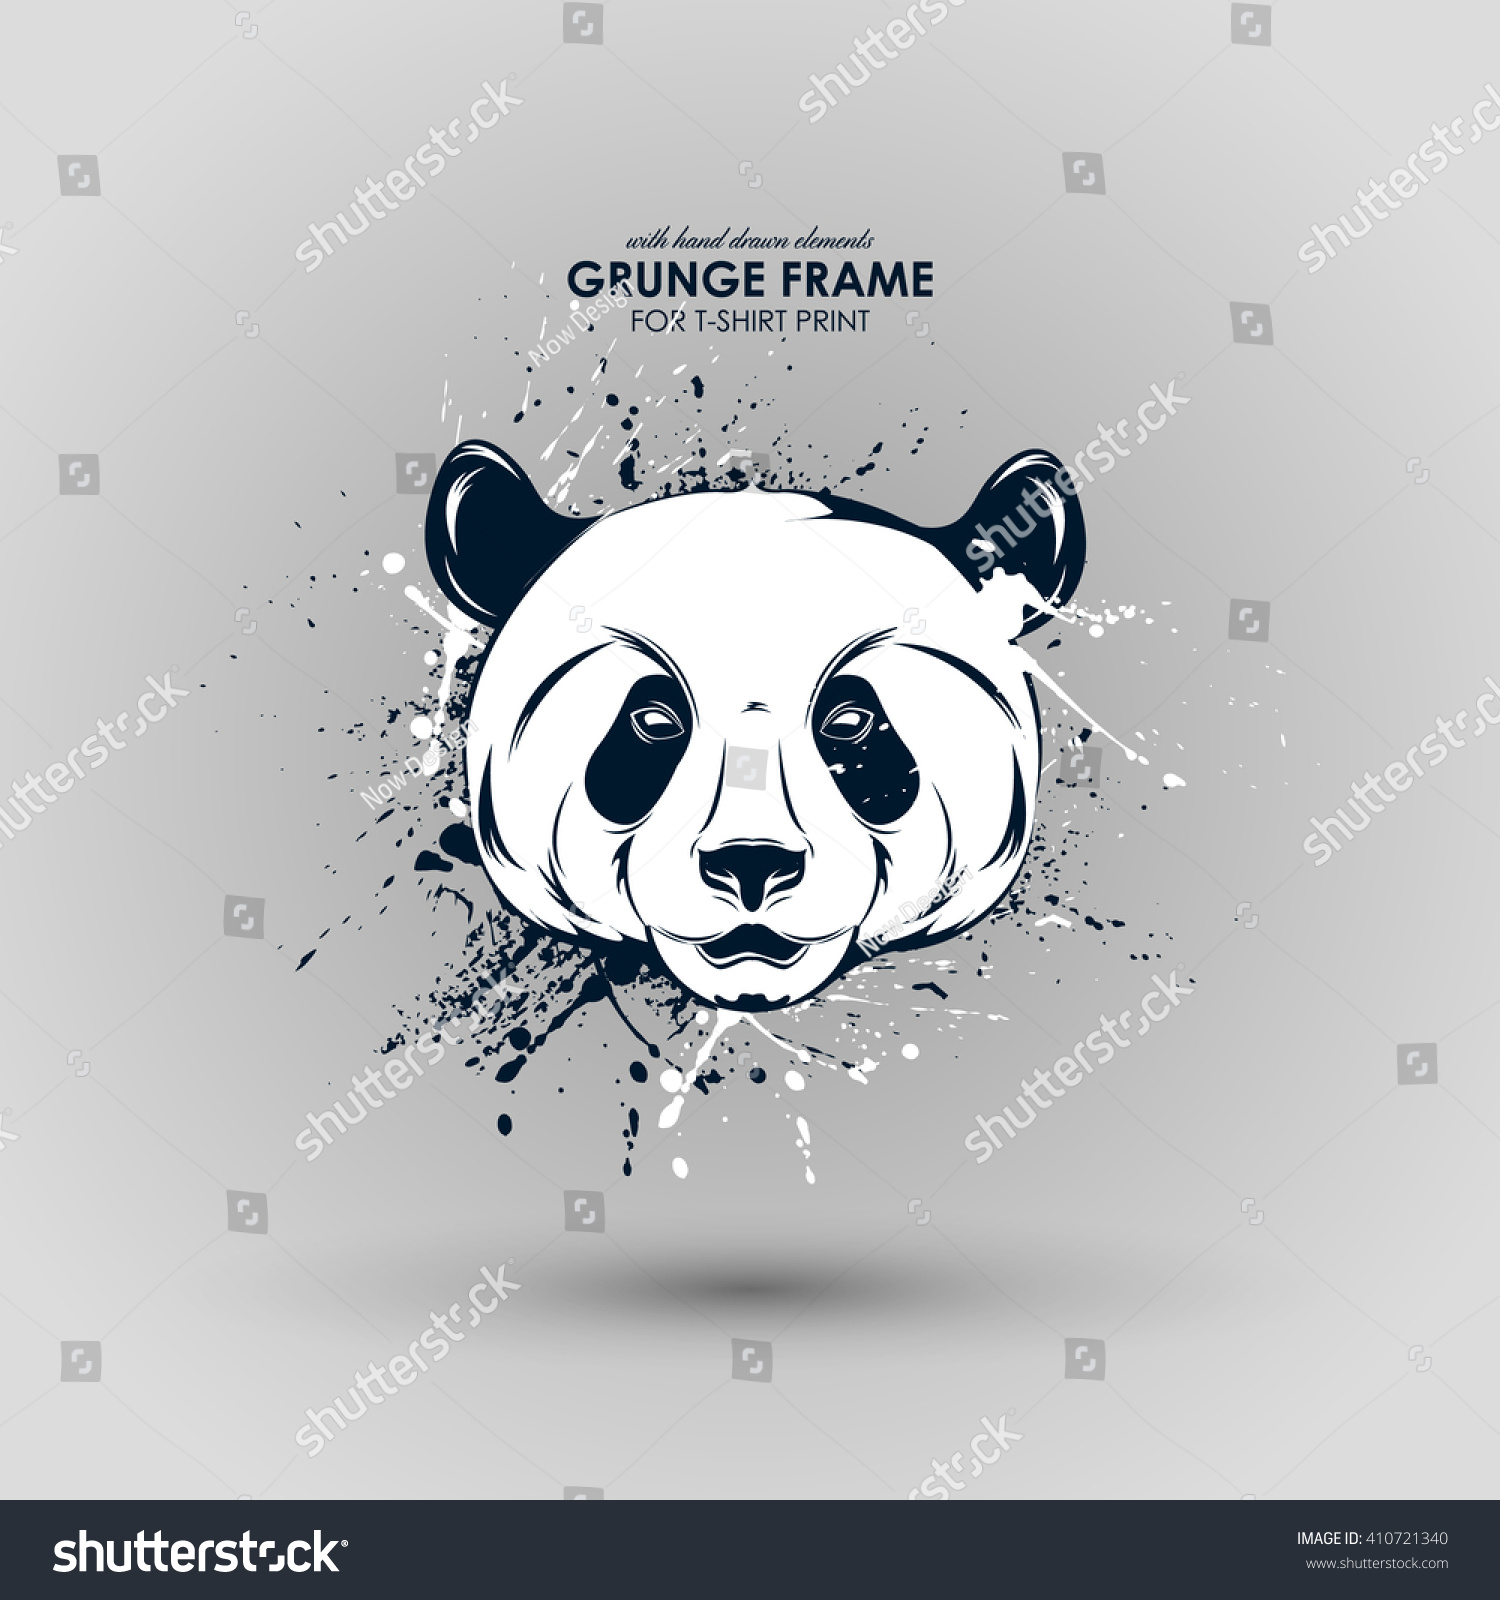 8f875cd4f8cd Abstract grunge animal print for t-shirt. Panda modern street style  attributes. Vector.